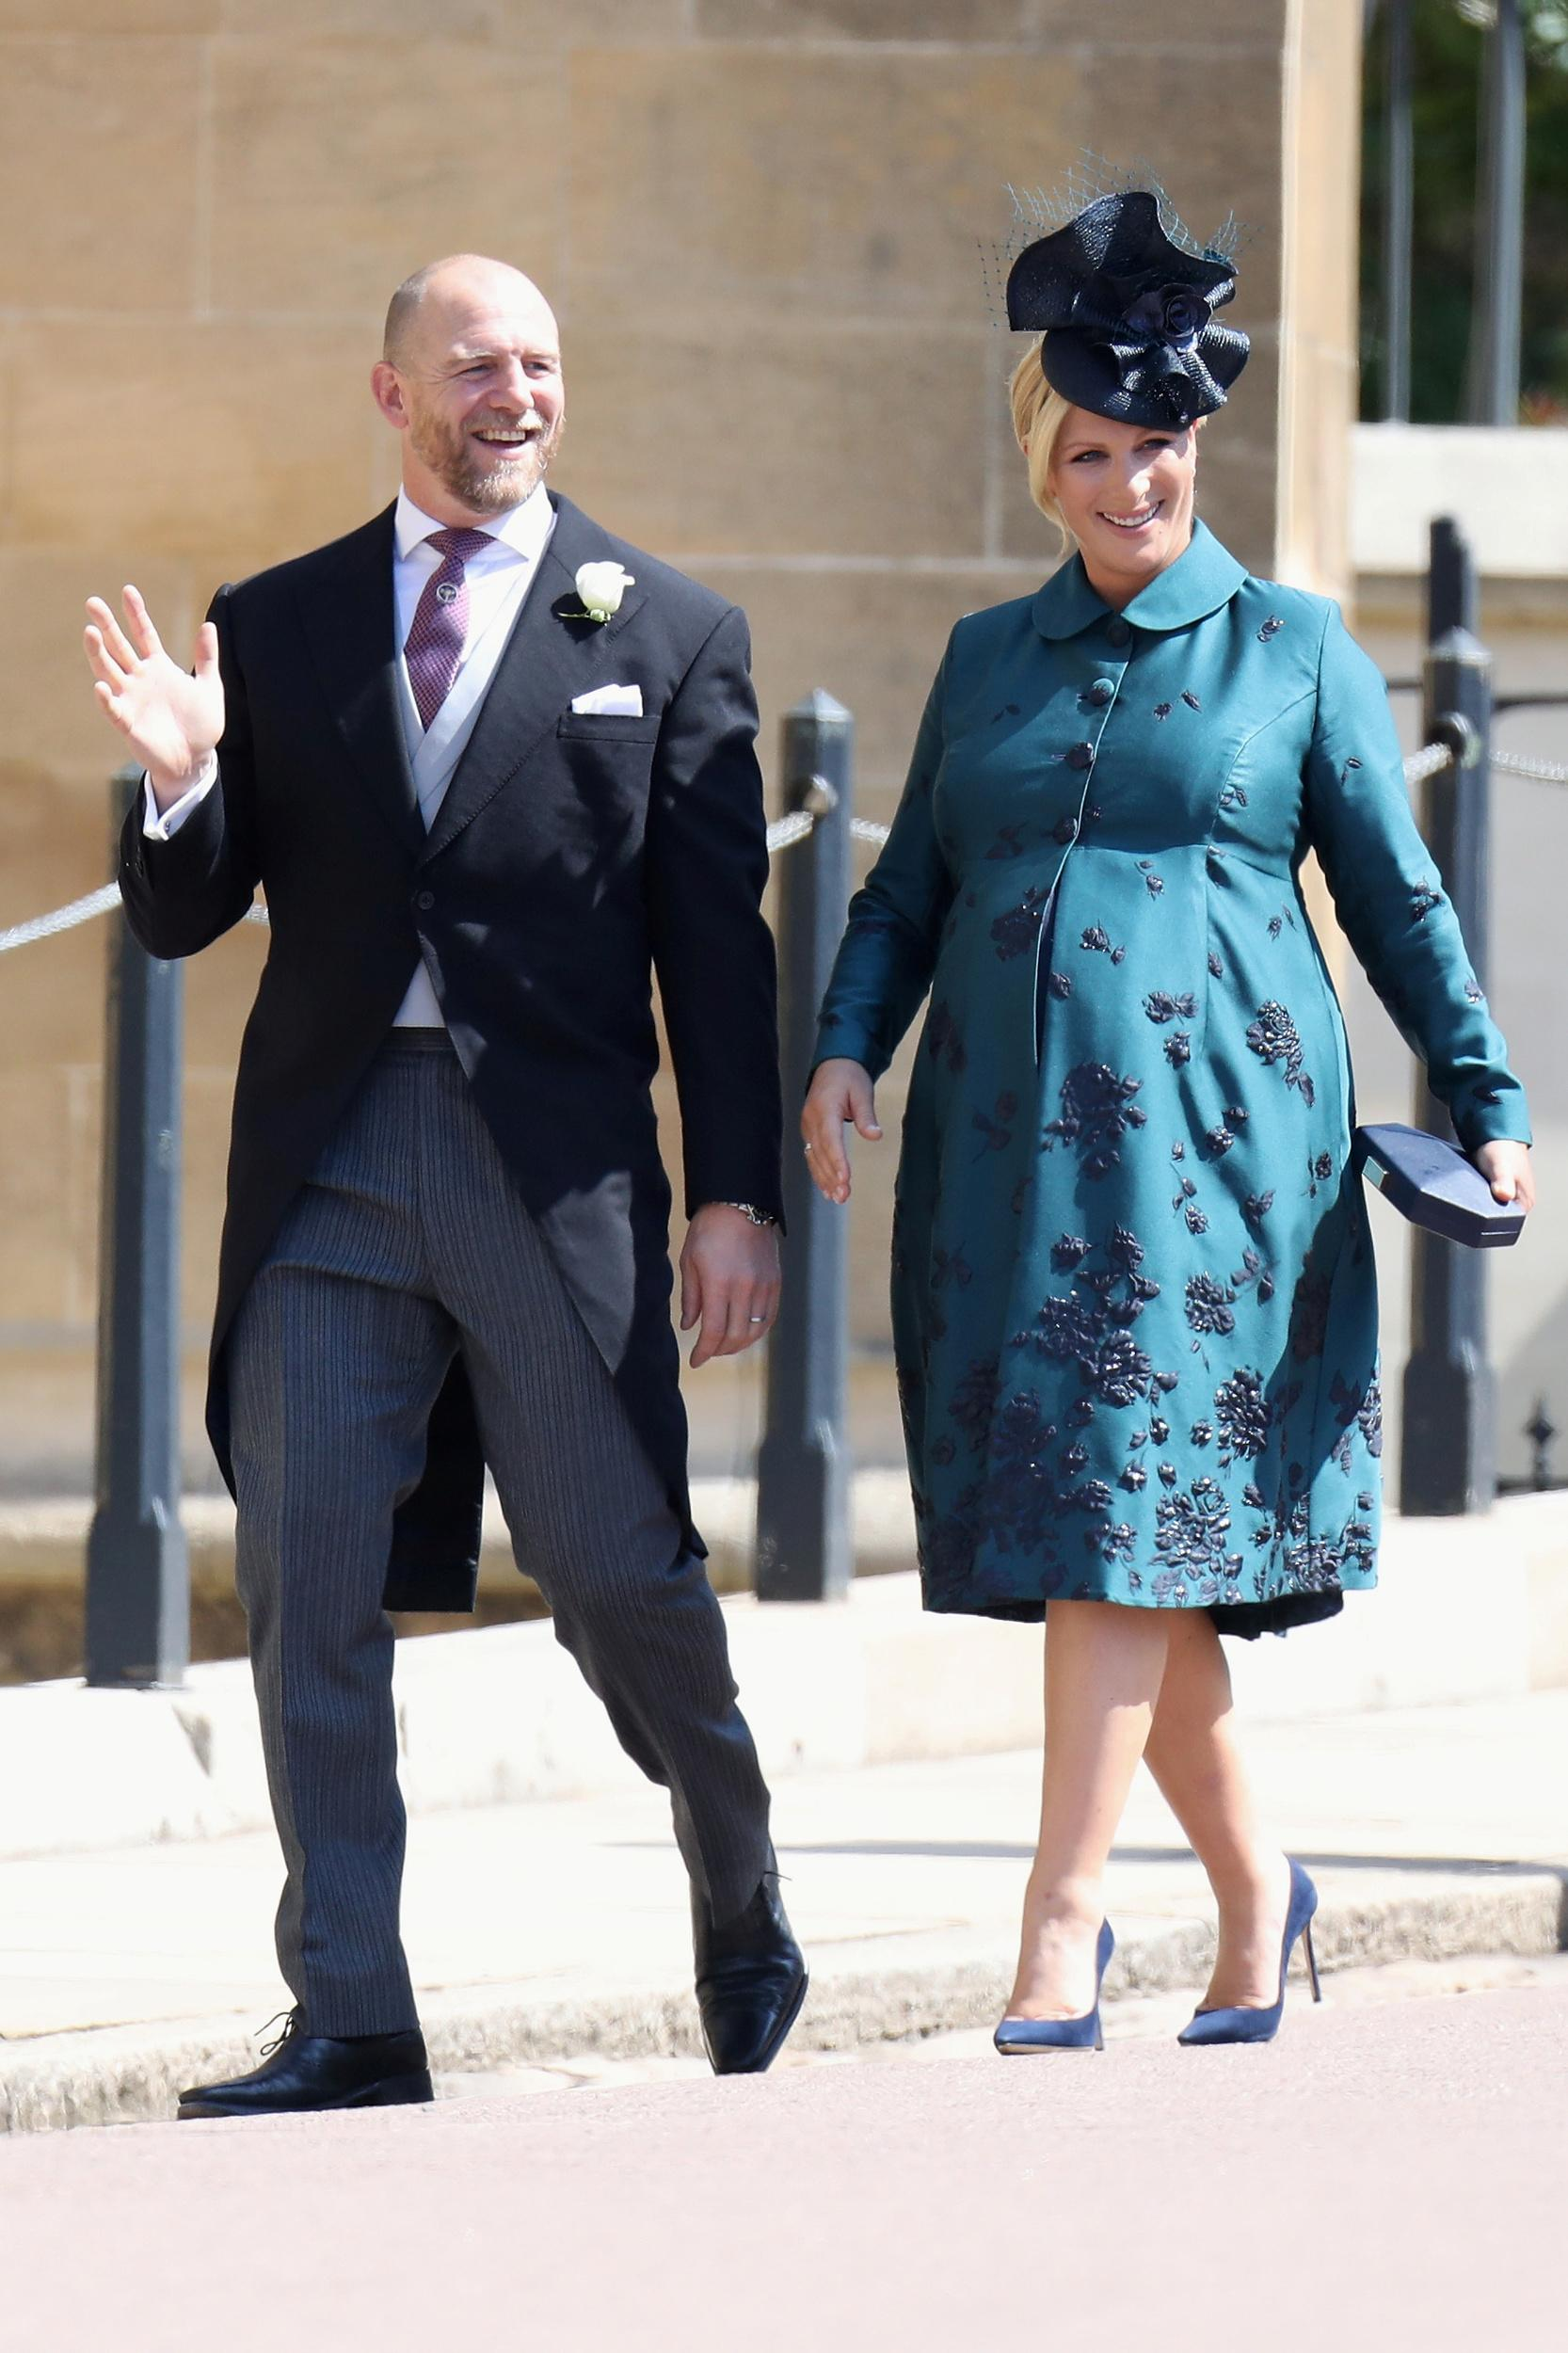 Mike and Zara Tindall attend the wedding of Prince Harry to Ms Meghan Markle at St George's Chapel, Windsor Castle on May 19, 2018 in Windsor, England. Prince Henry Charles Albert David of Wales marries Ms. Meghan Markle in a service at St George's Chapel inside the grounds of Windsor Castle. Among the guests were 2200 members of the public, the royal family and Ms. Markle's Mother Doria Ragland. Chris Jackson/Pool via REUTERS